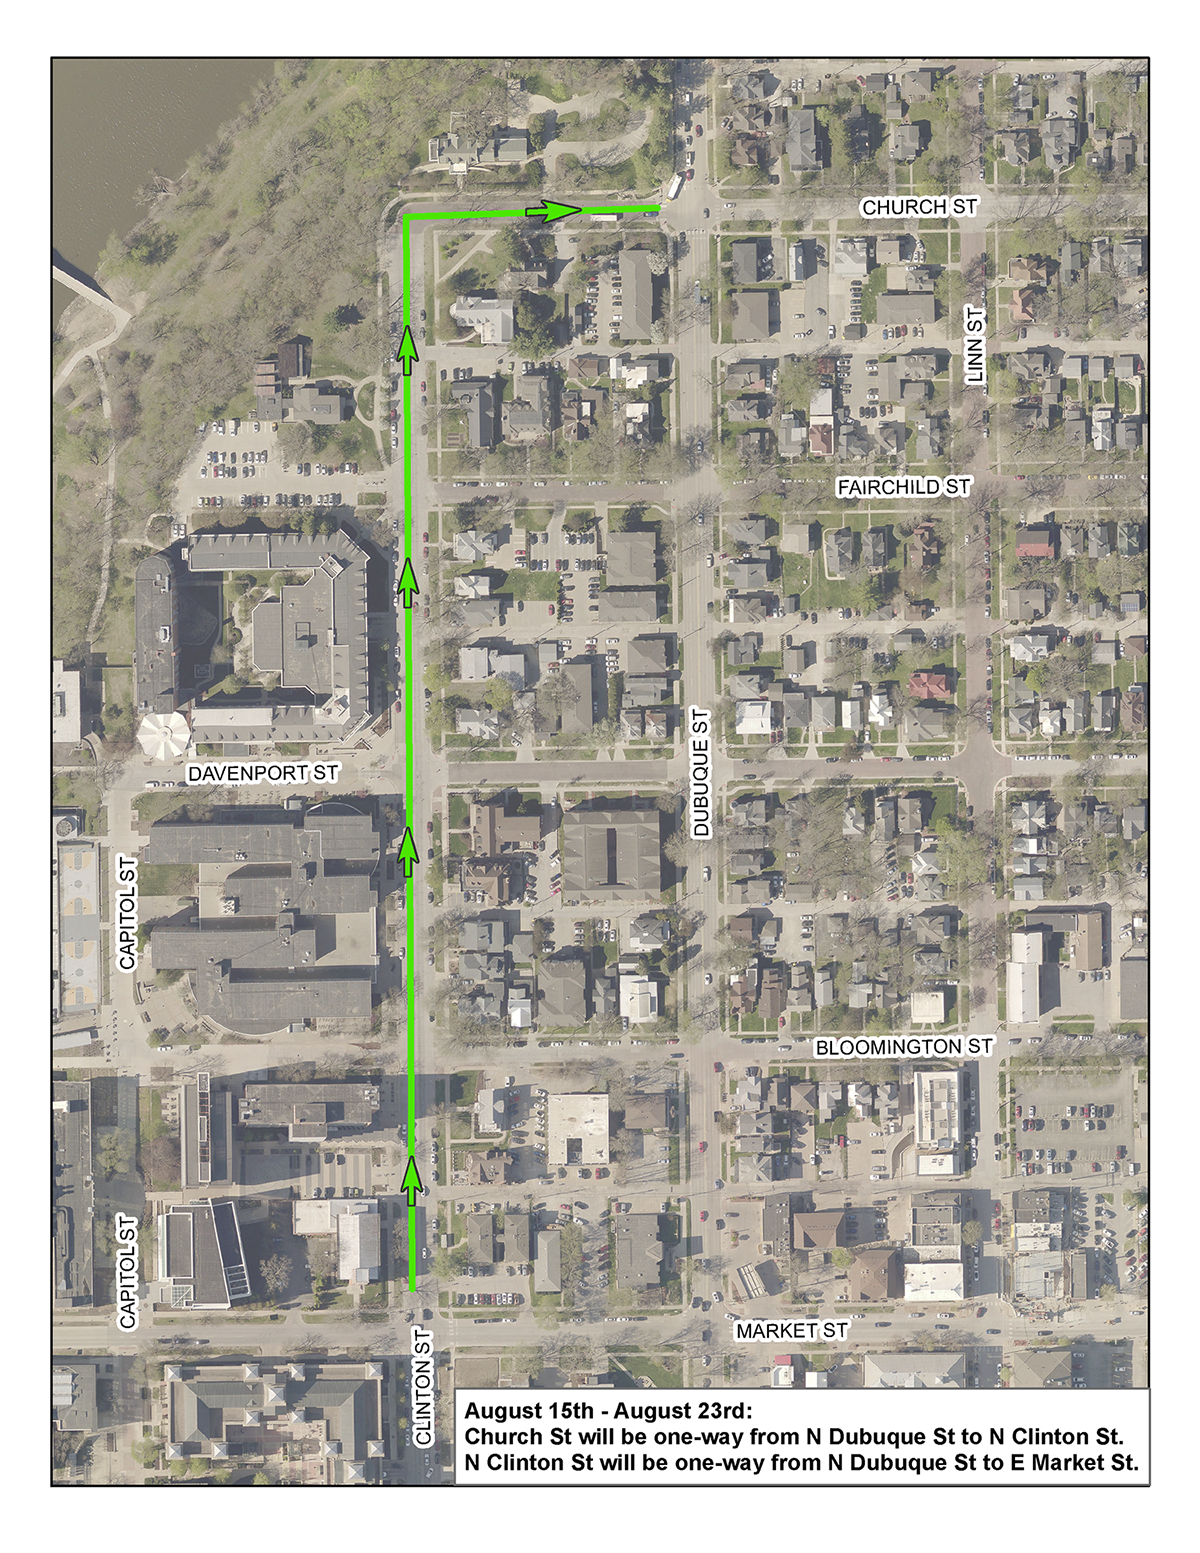 A map of one-way streets for UI move-in.